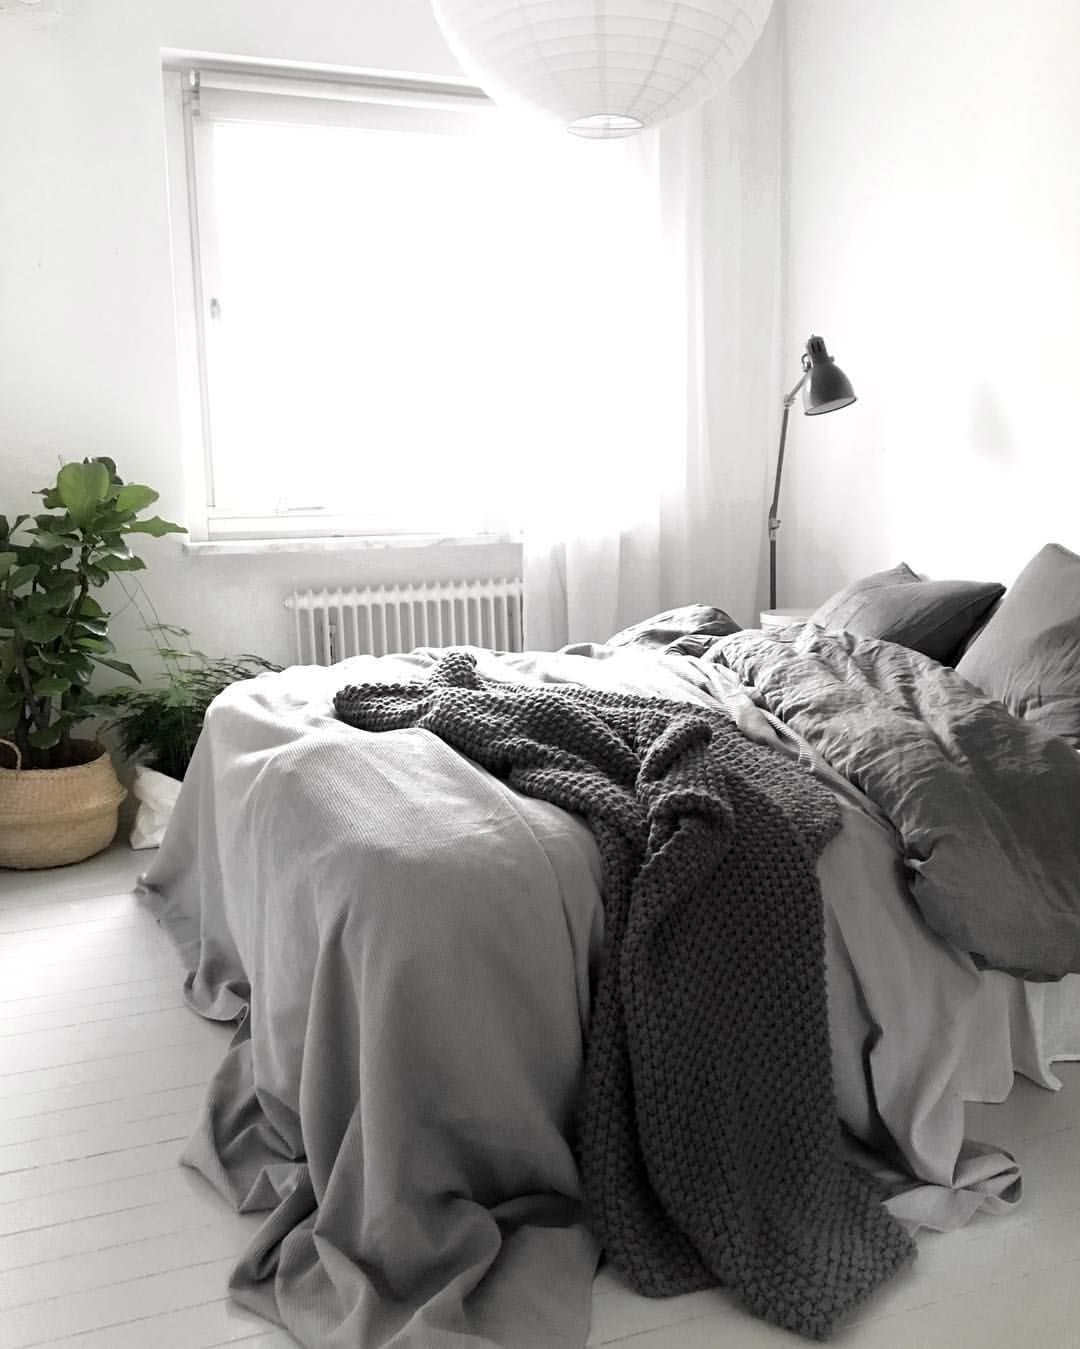 how decorate small bedroom instagram billede fra tina johansson 22 februar 2016 kl 15576